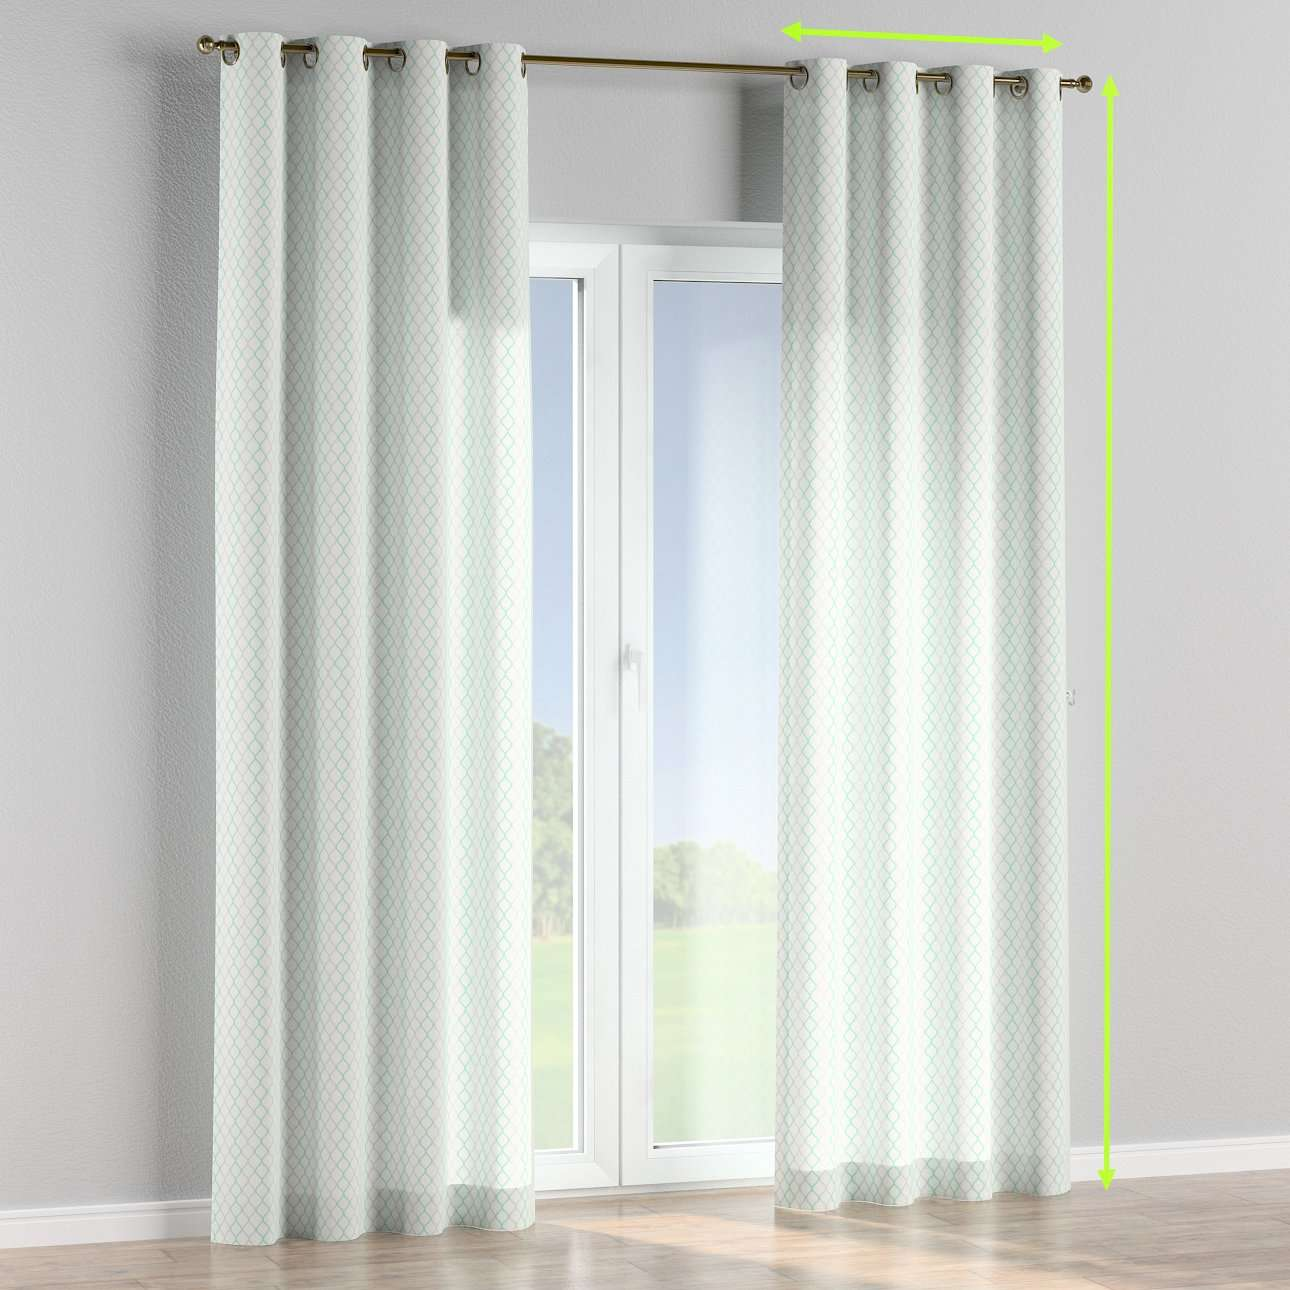 Eyelet lined curtains in collection Geometric, fabric: 141-47